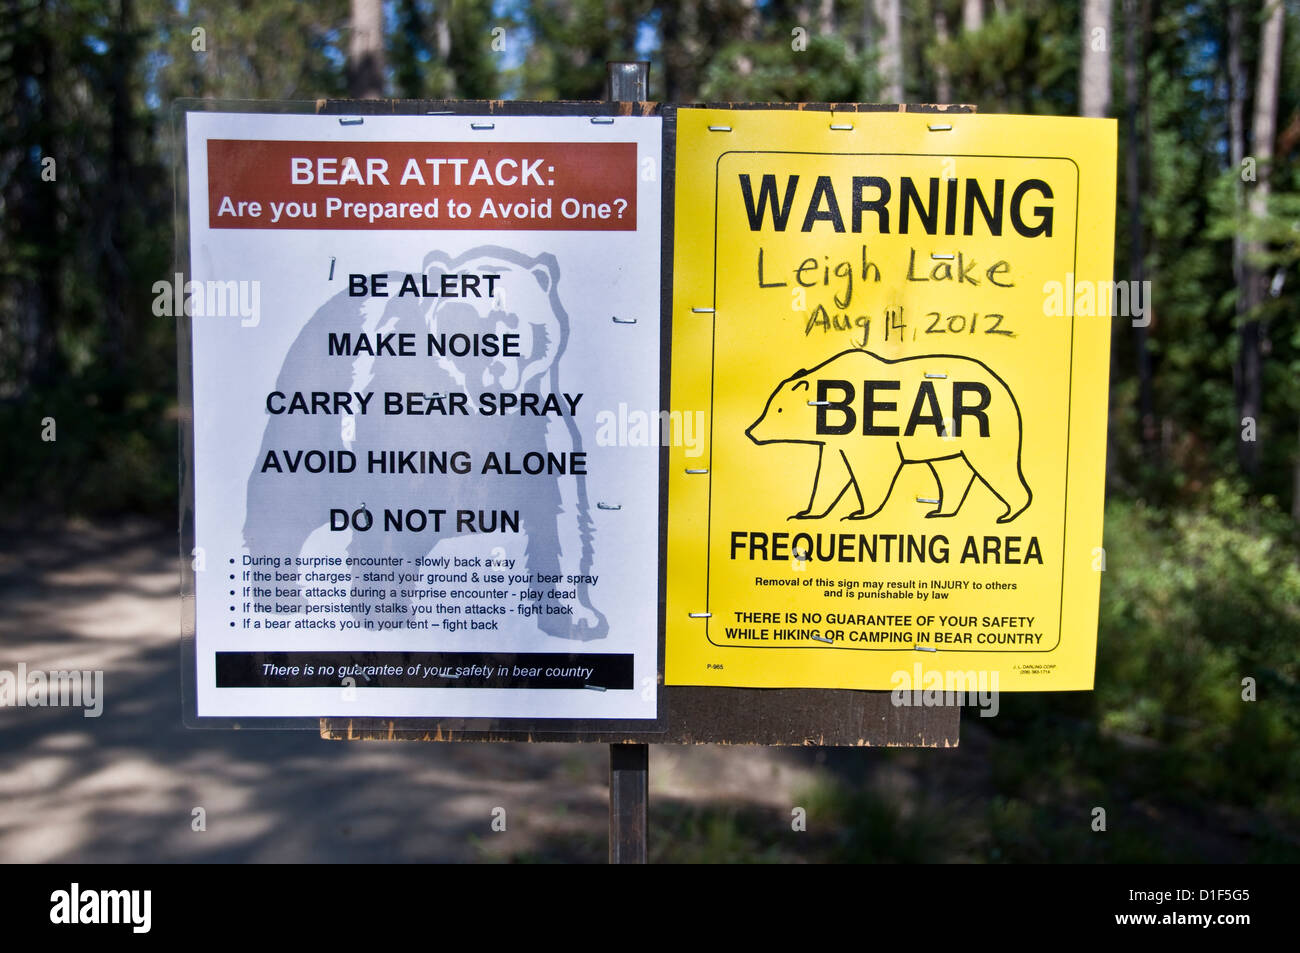 Information and rules sign about bears on a trail around Leigh Lake - Grand Teton national park, Wyoming, USA - Stock Image